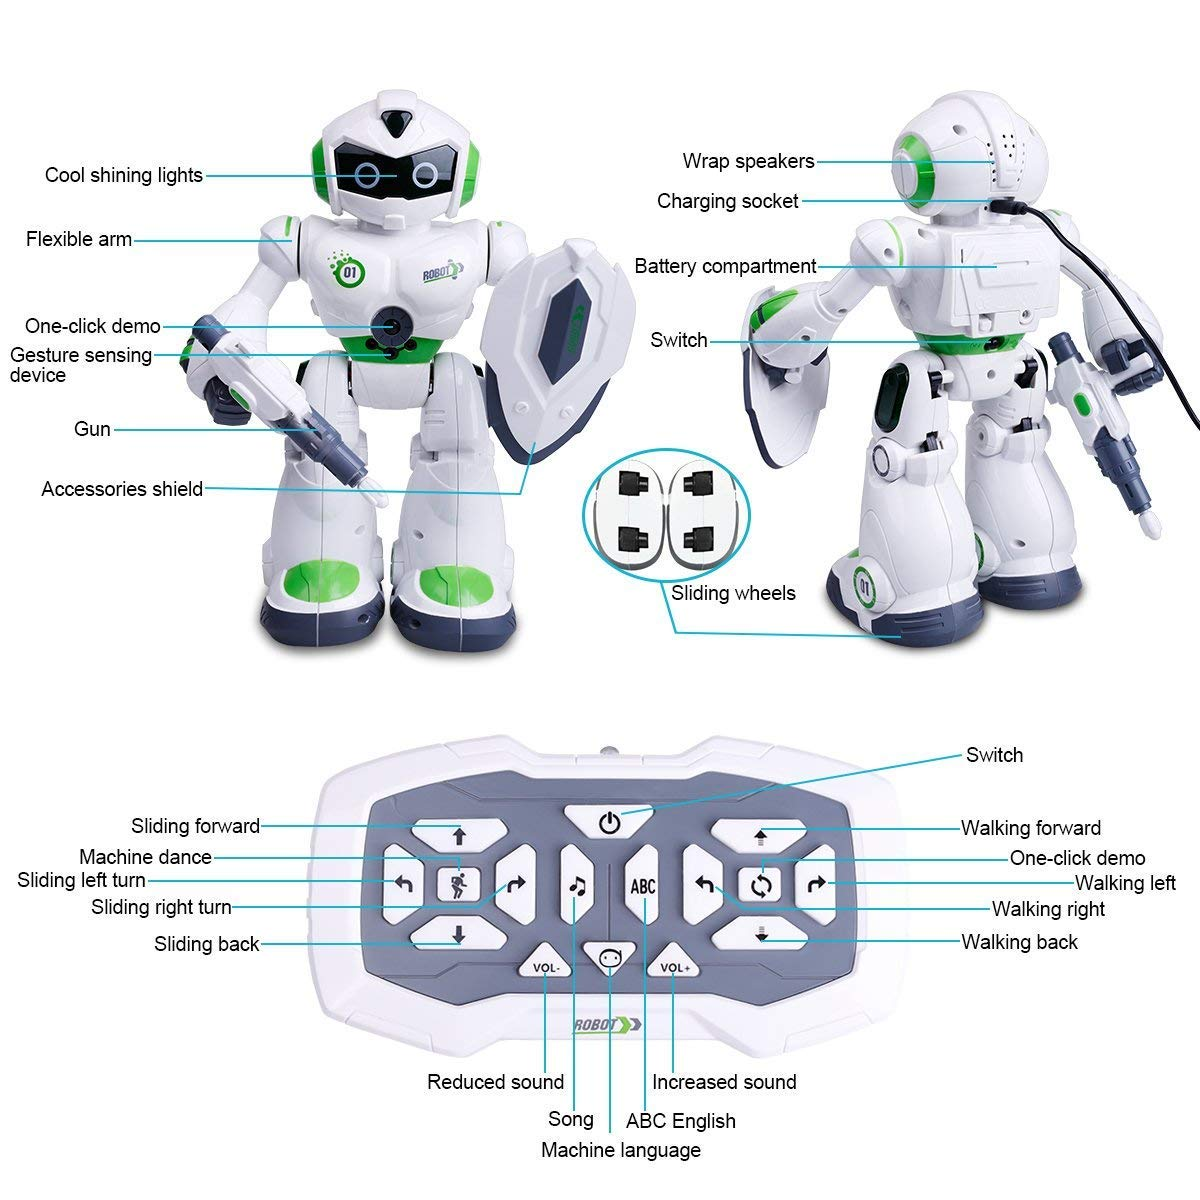 Remote Control Robot,Robot Toys,Smart Robotics for Kids with Gesture Sense, Interactive Walking Singing Dancing Speaking,with LED Light, Shoots Missiles, Talking, Walking, Singing, Educational Toys by Locke Teddy (Image #8)